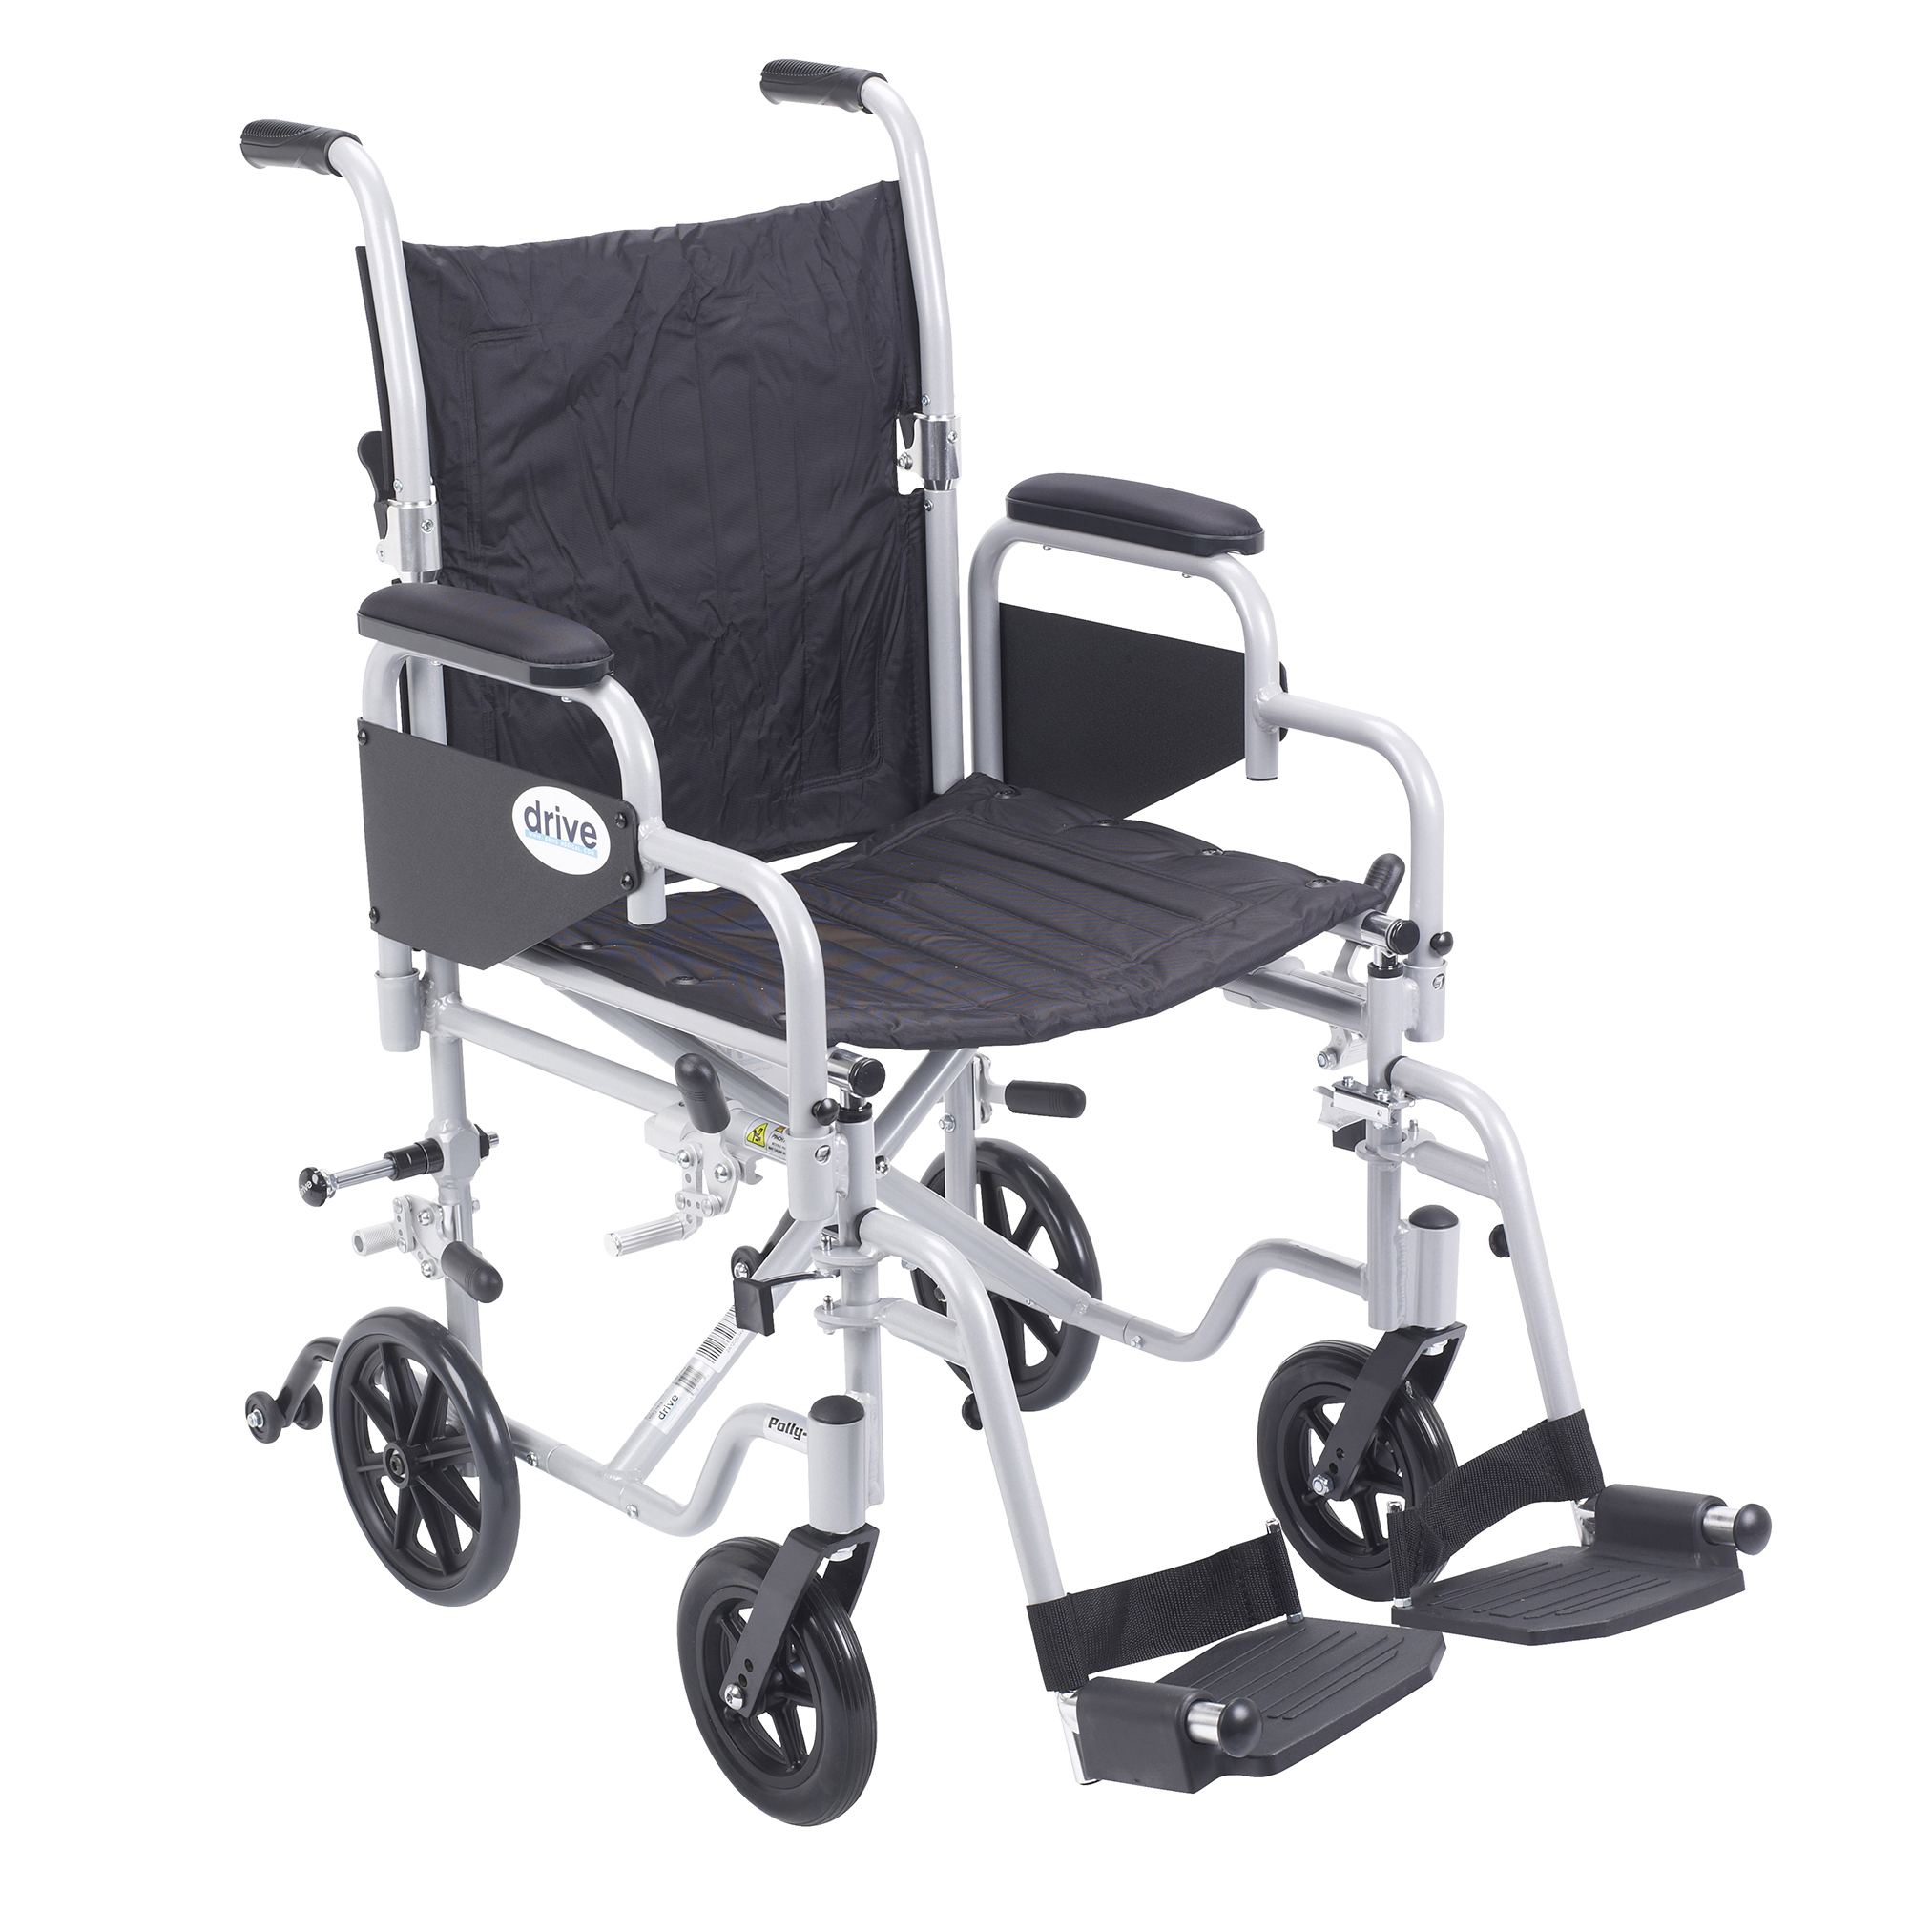 "Drive Medical Poly Fly Light Weight Transport Chair Wheelchair with Swing away Footrests, 18"" Seat"